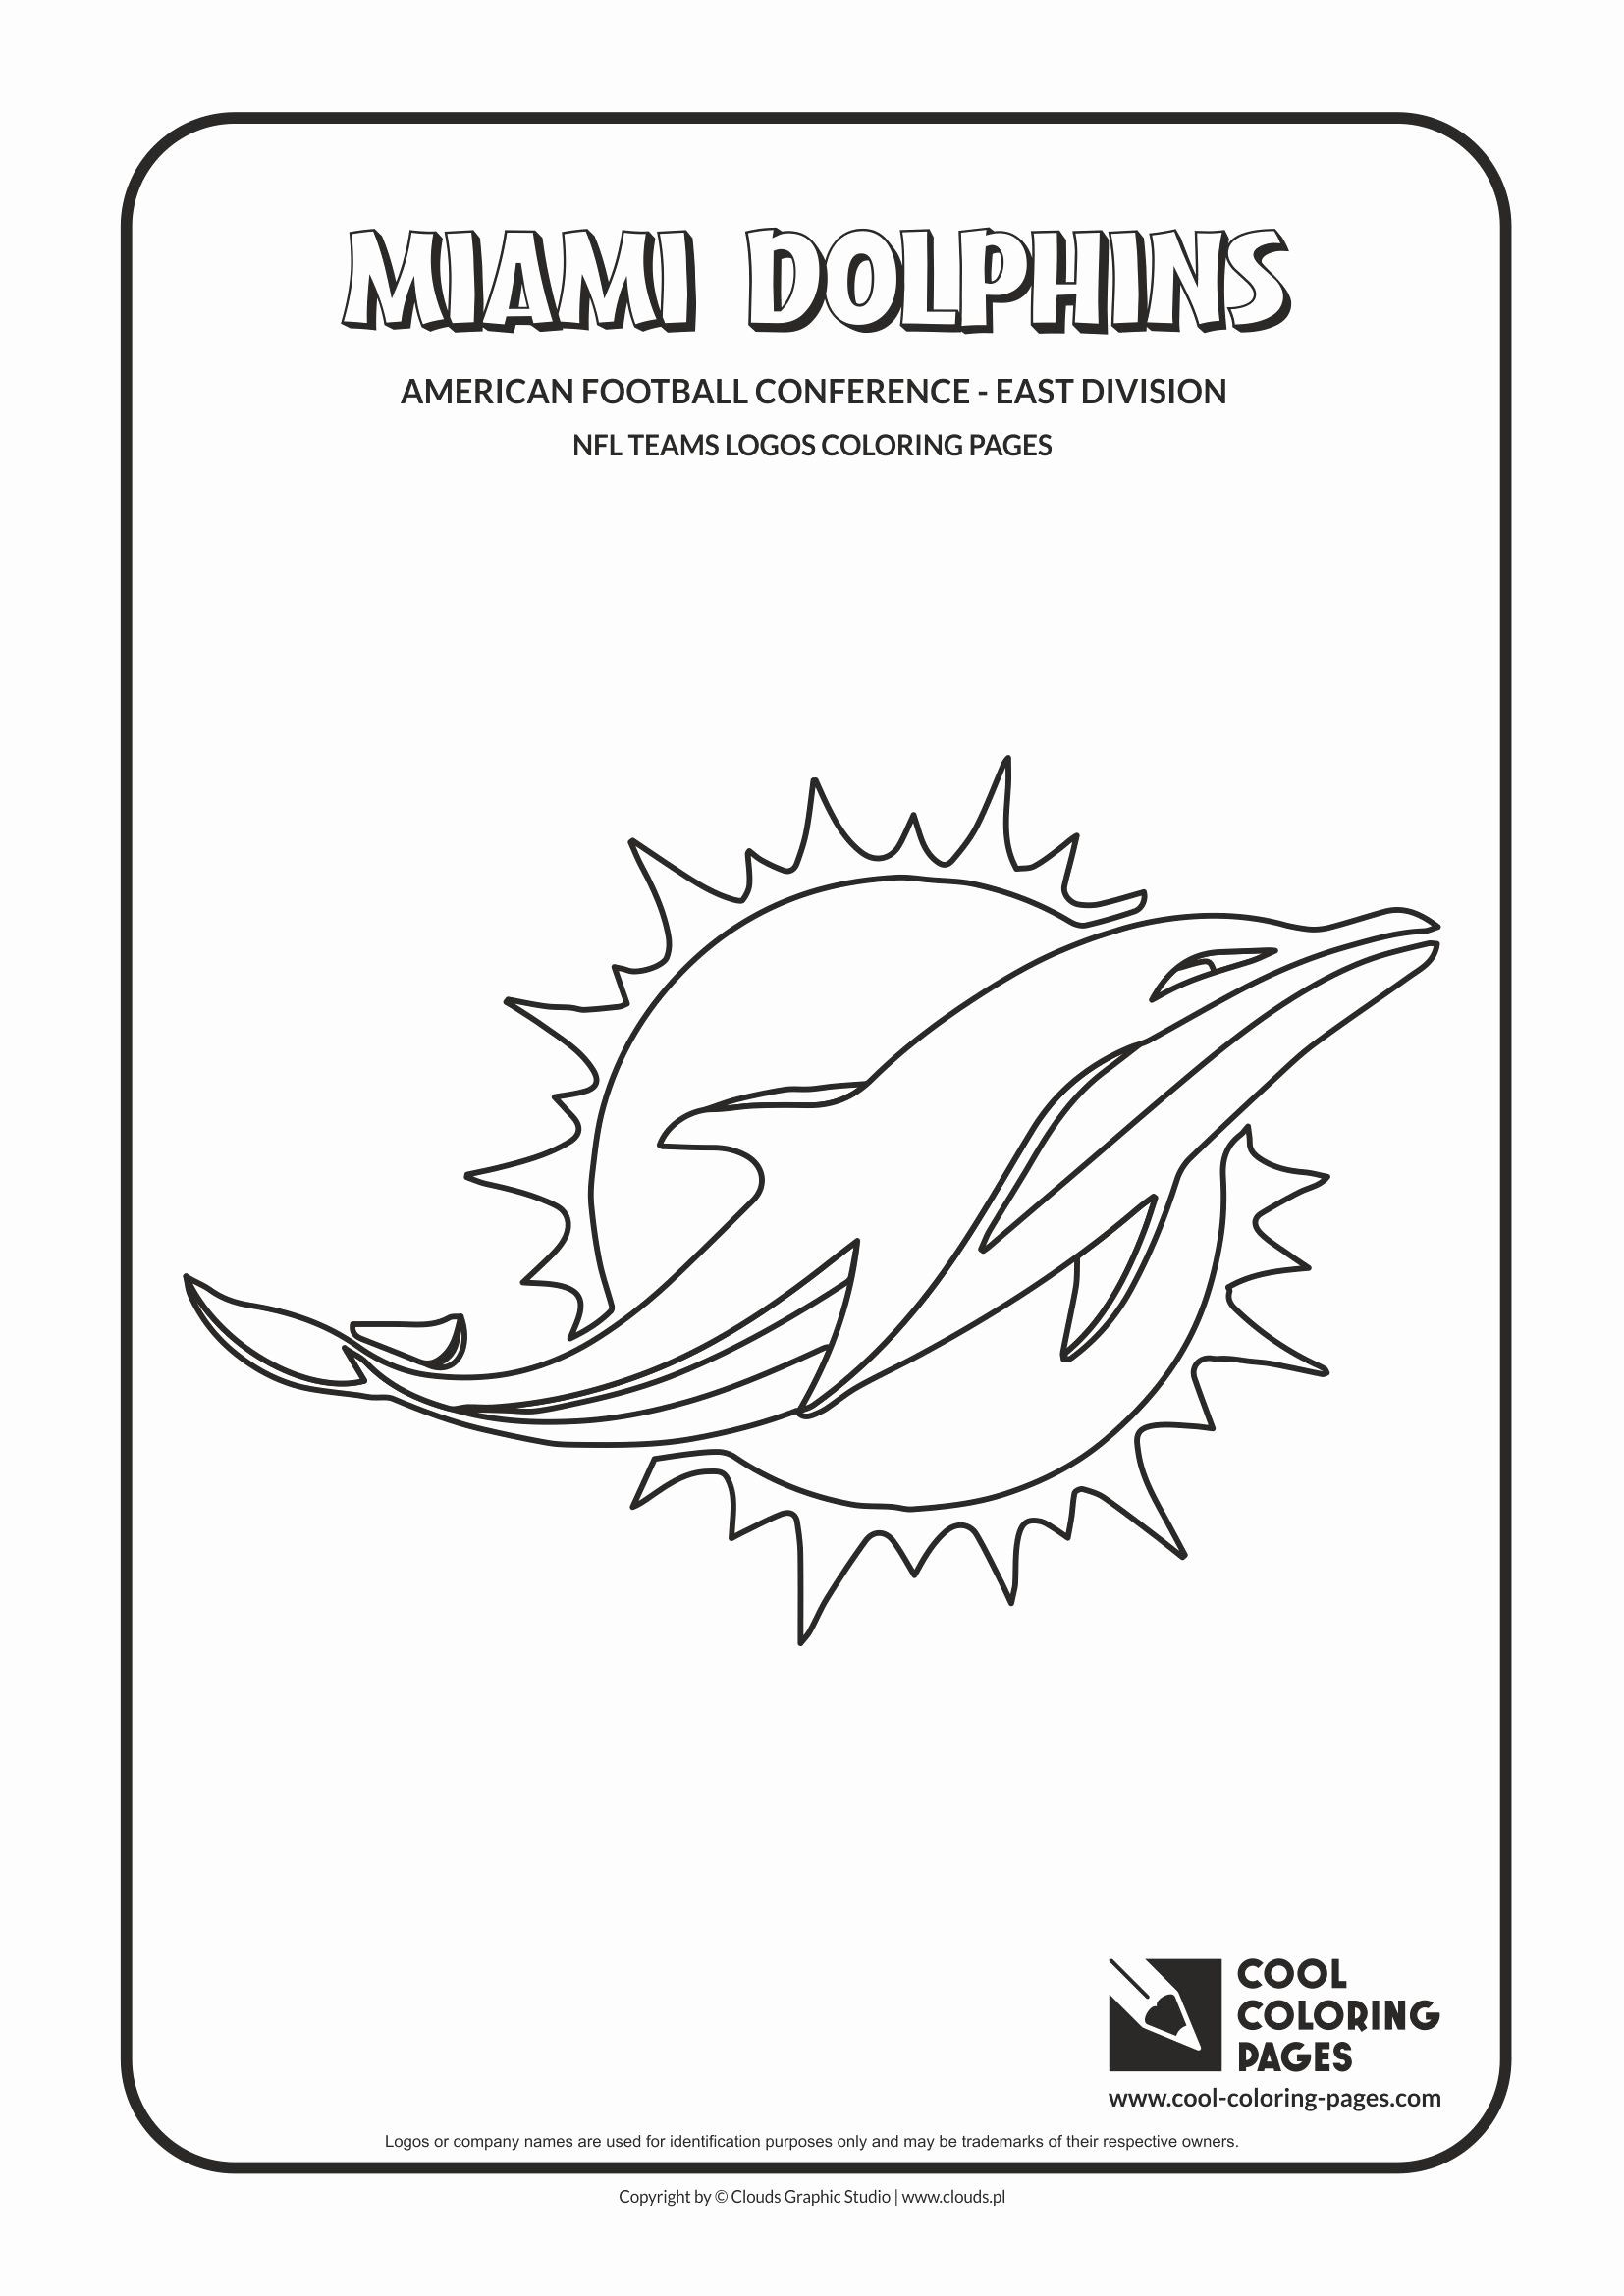 Pink Dolphin Coloring Pages Inspirational Of Miami Dolphins Logos